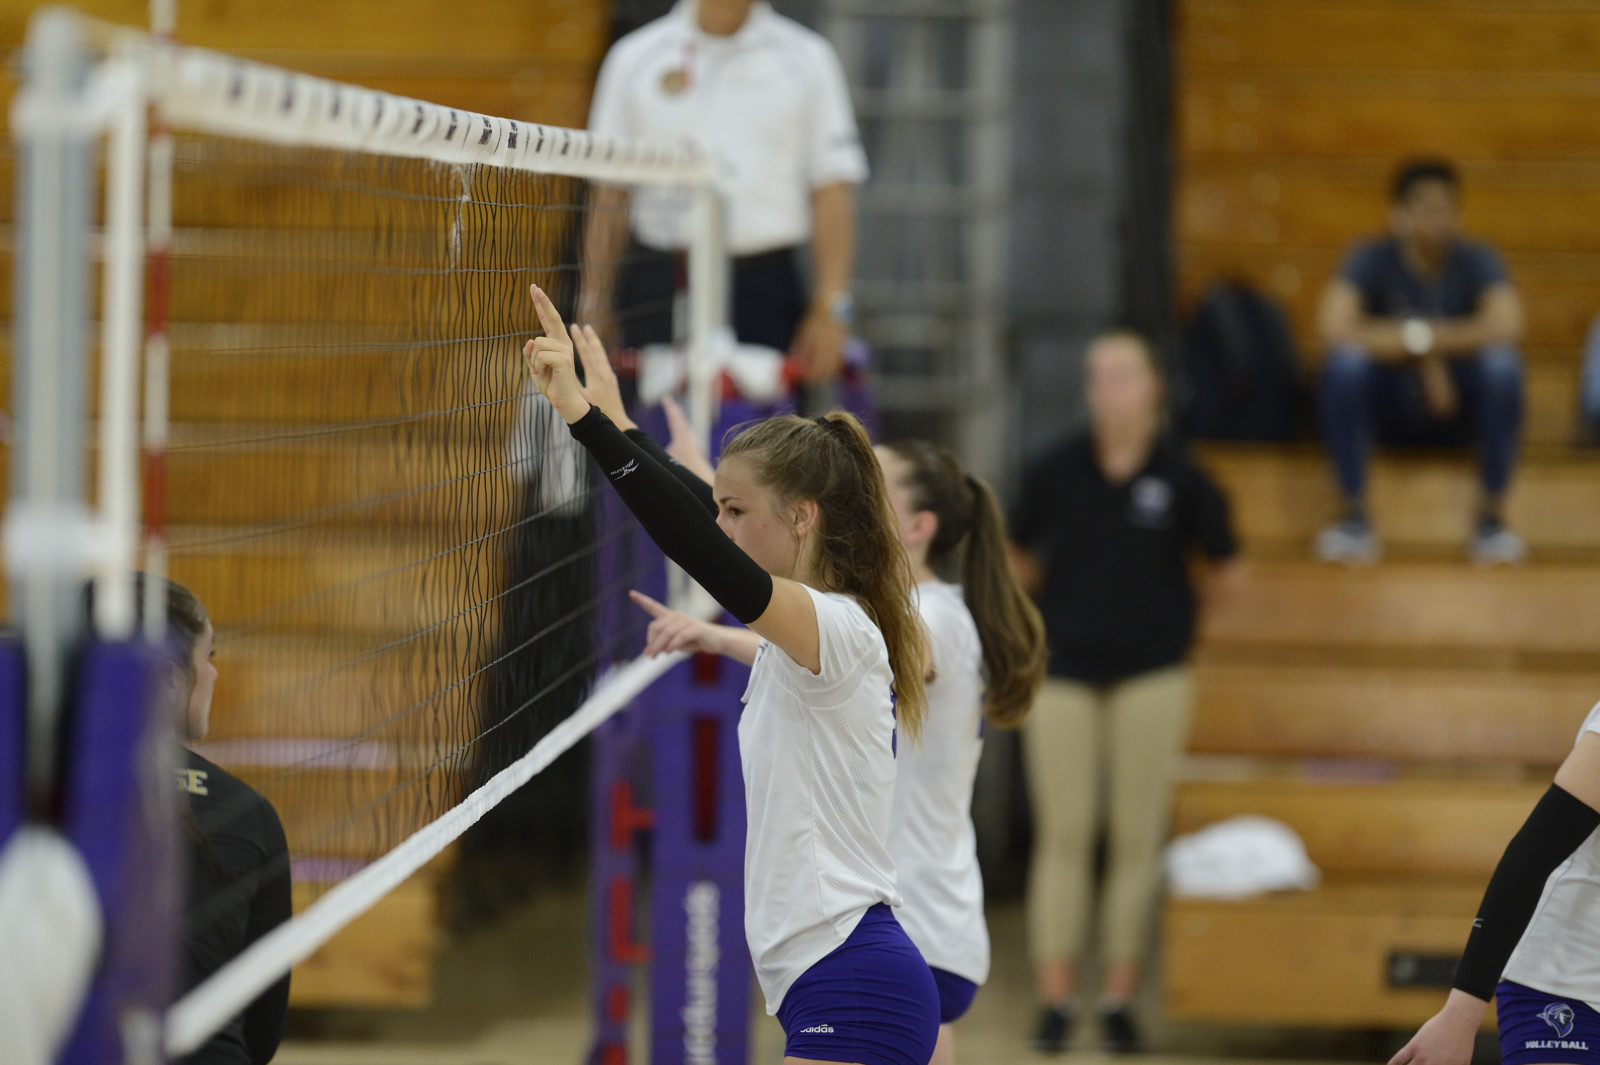 Women's Volleyball Opens 2018 Season With Four-Set Triumph Over Southern Connecticut State